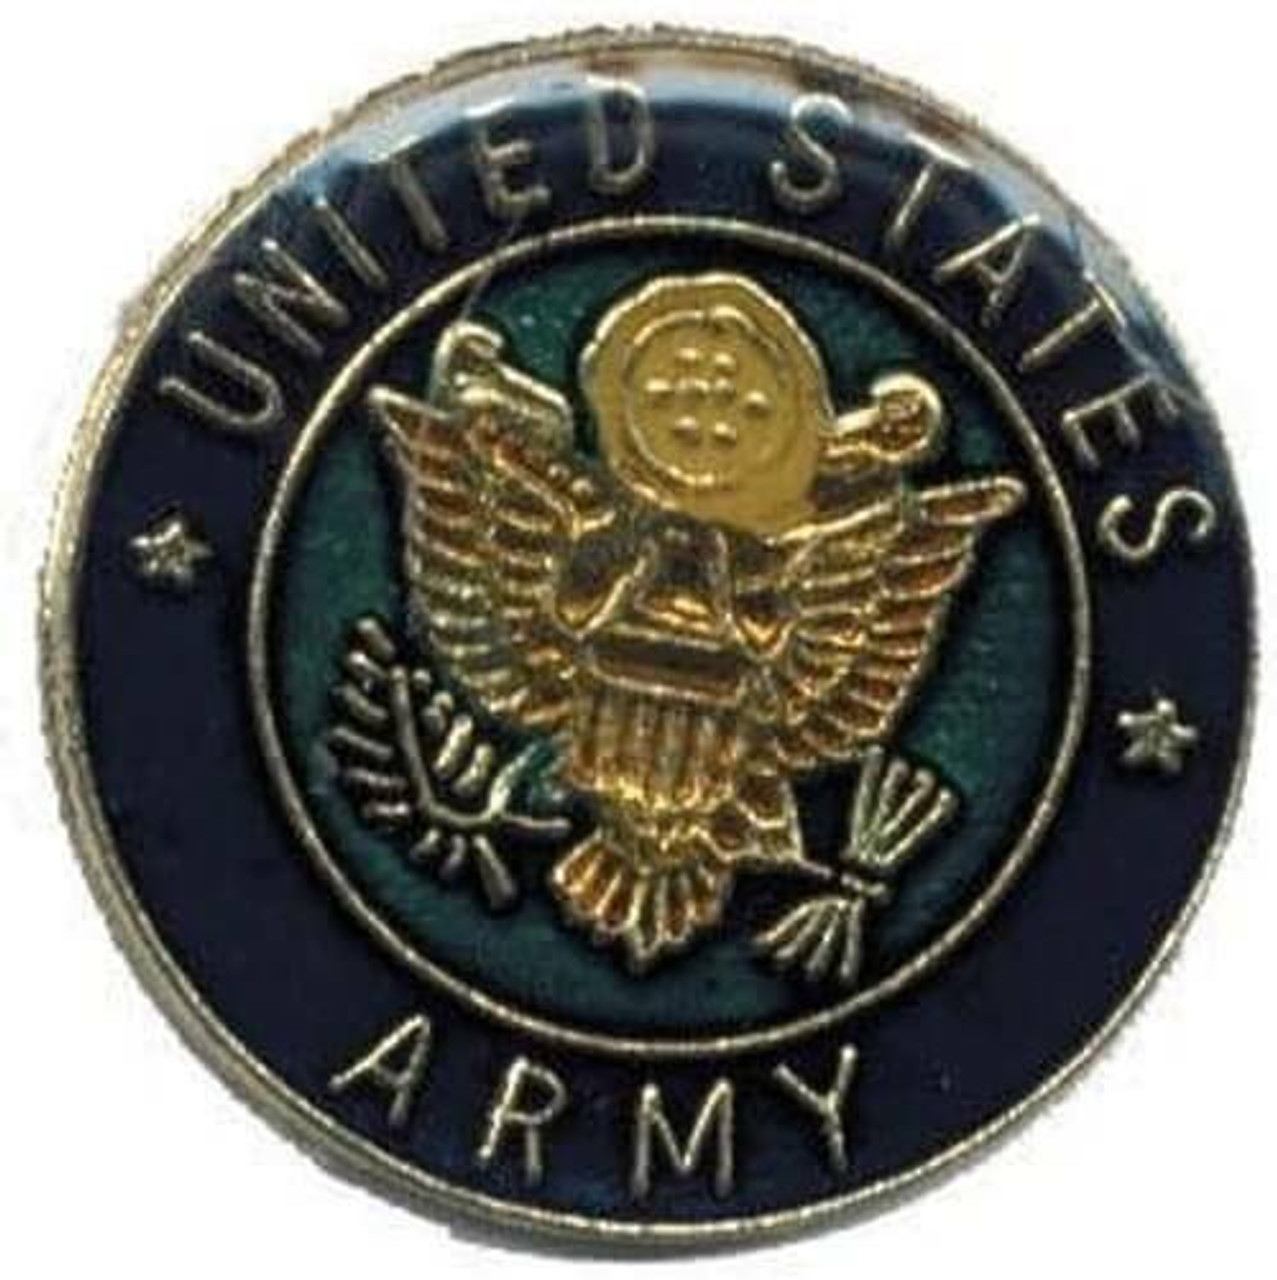 United States Army Lapel Pin